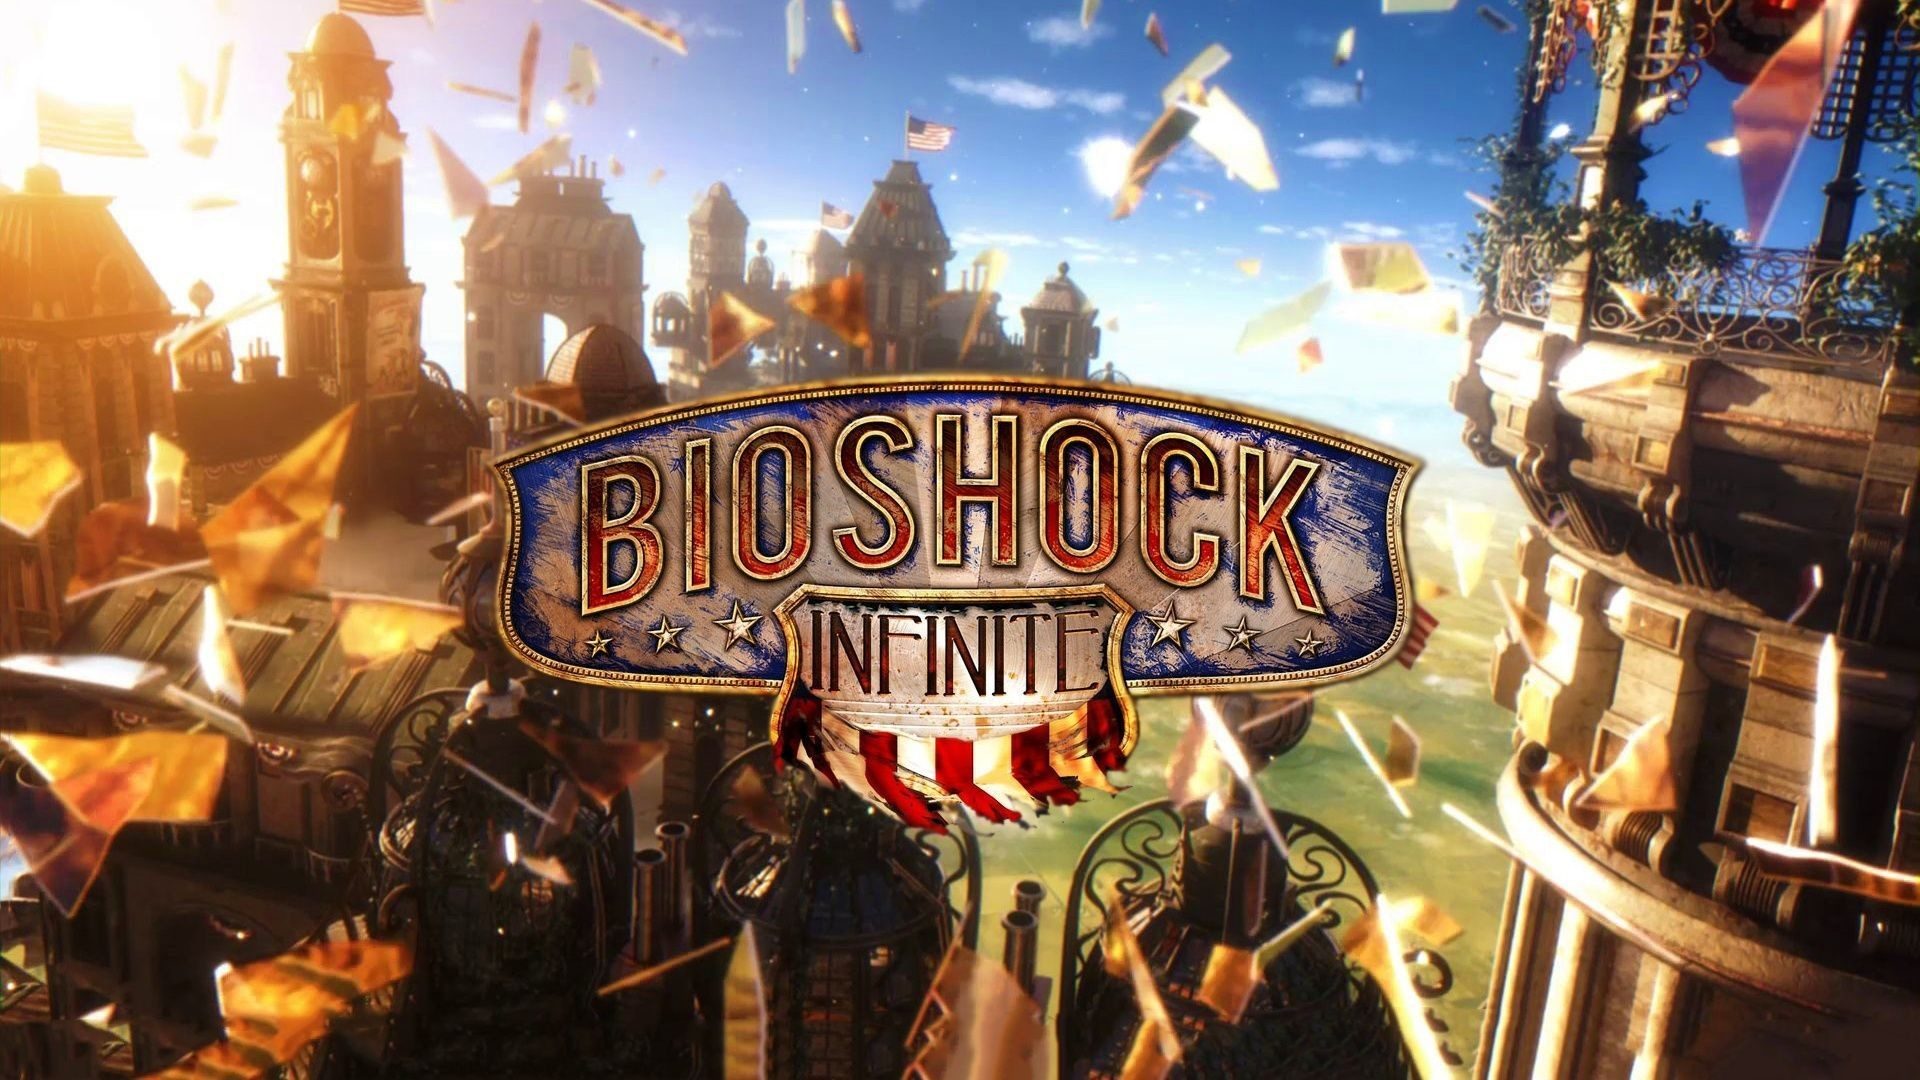 1920x1080 BioShock Infinite Wallpapers